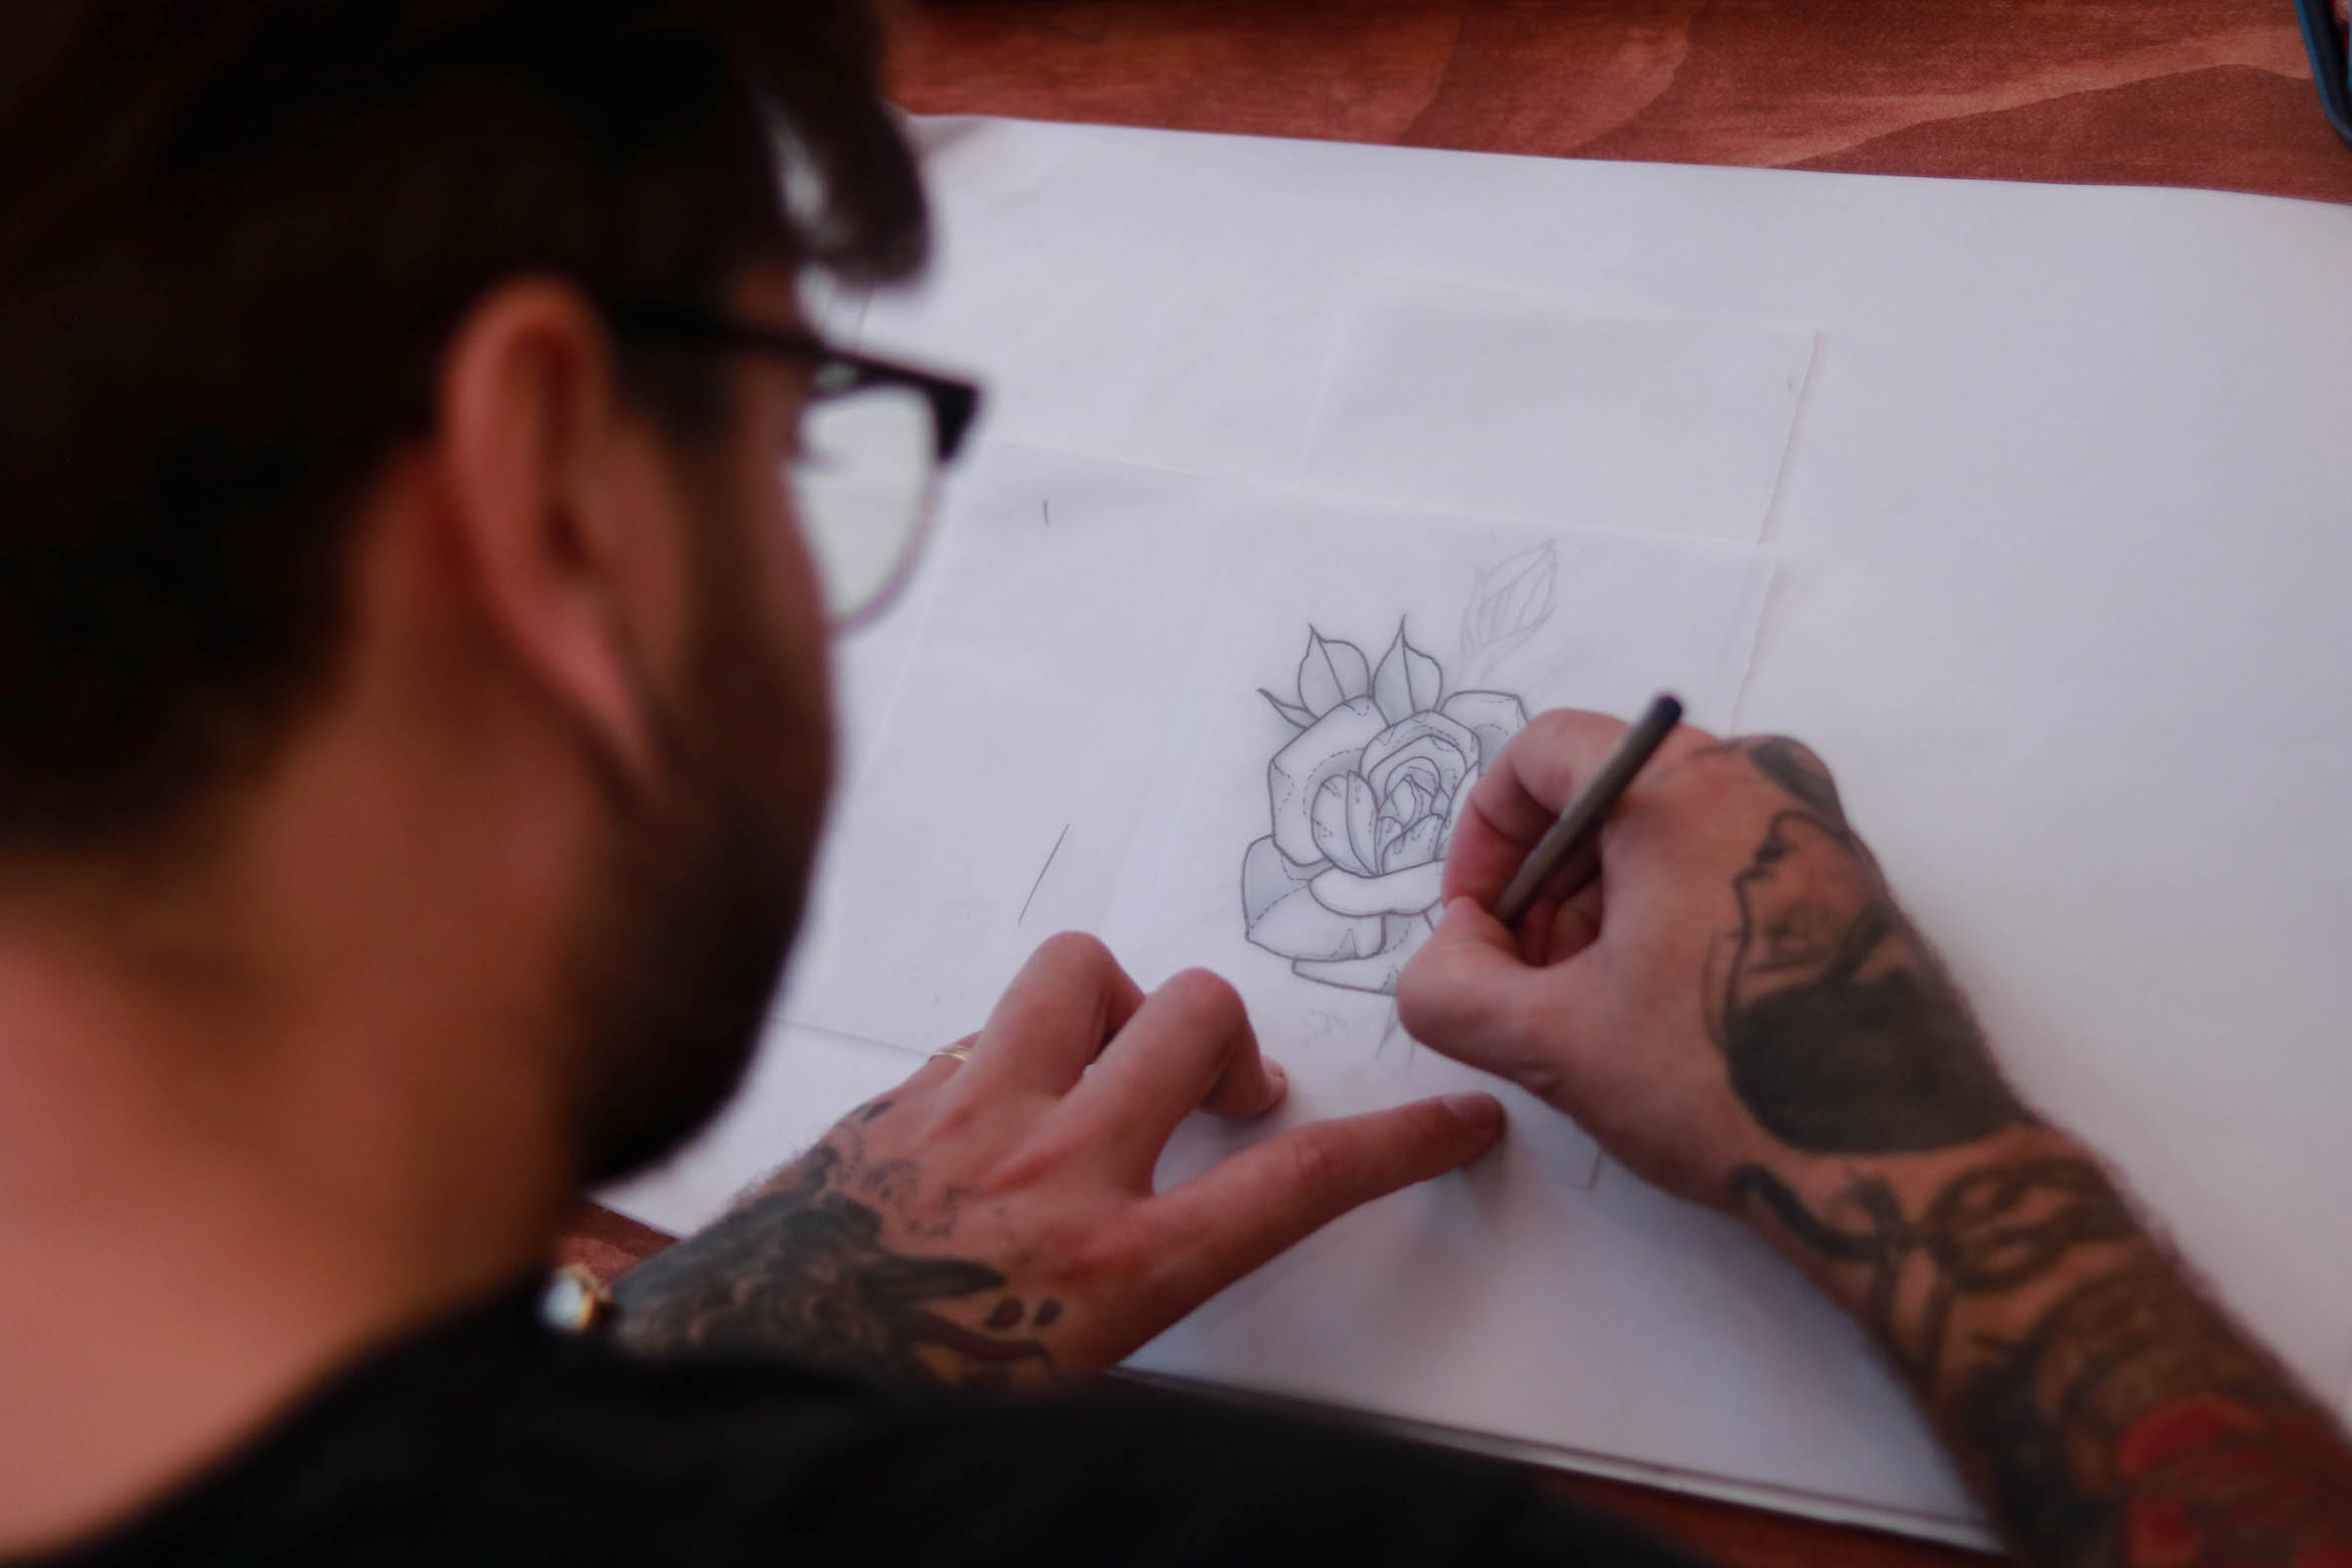 Mason Murdey designing a tattoo for a client